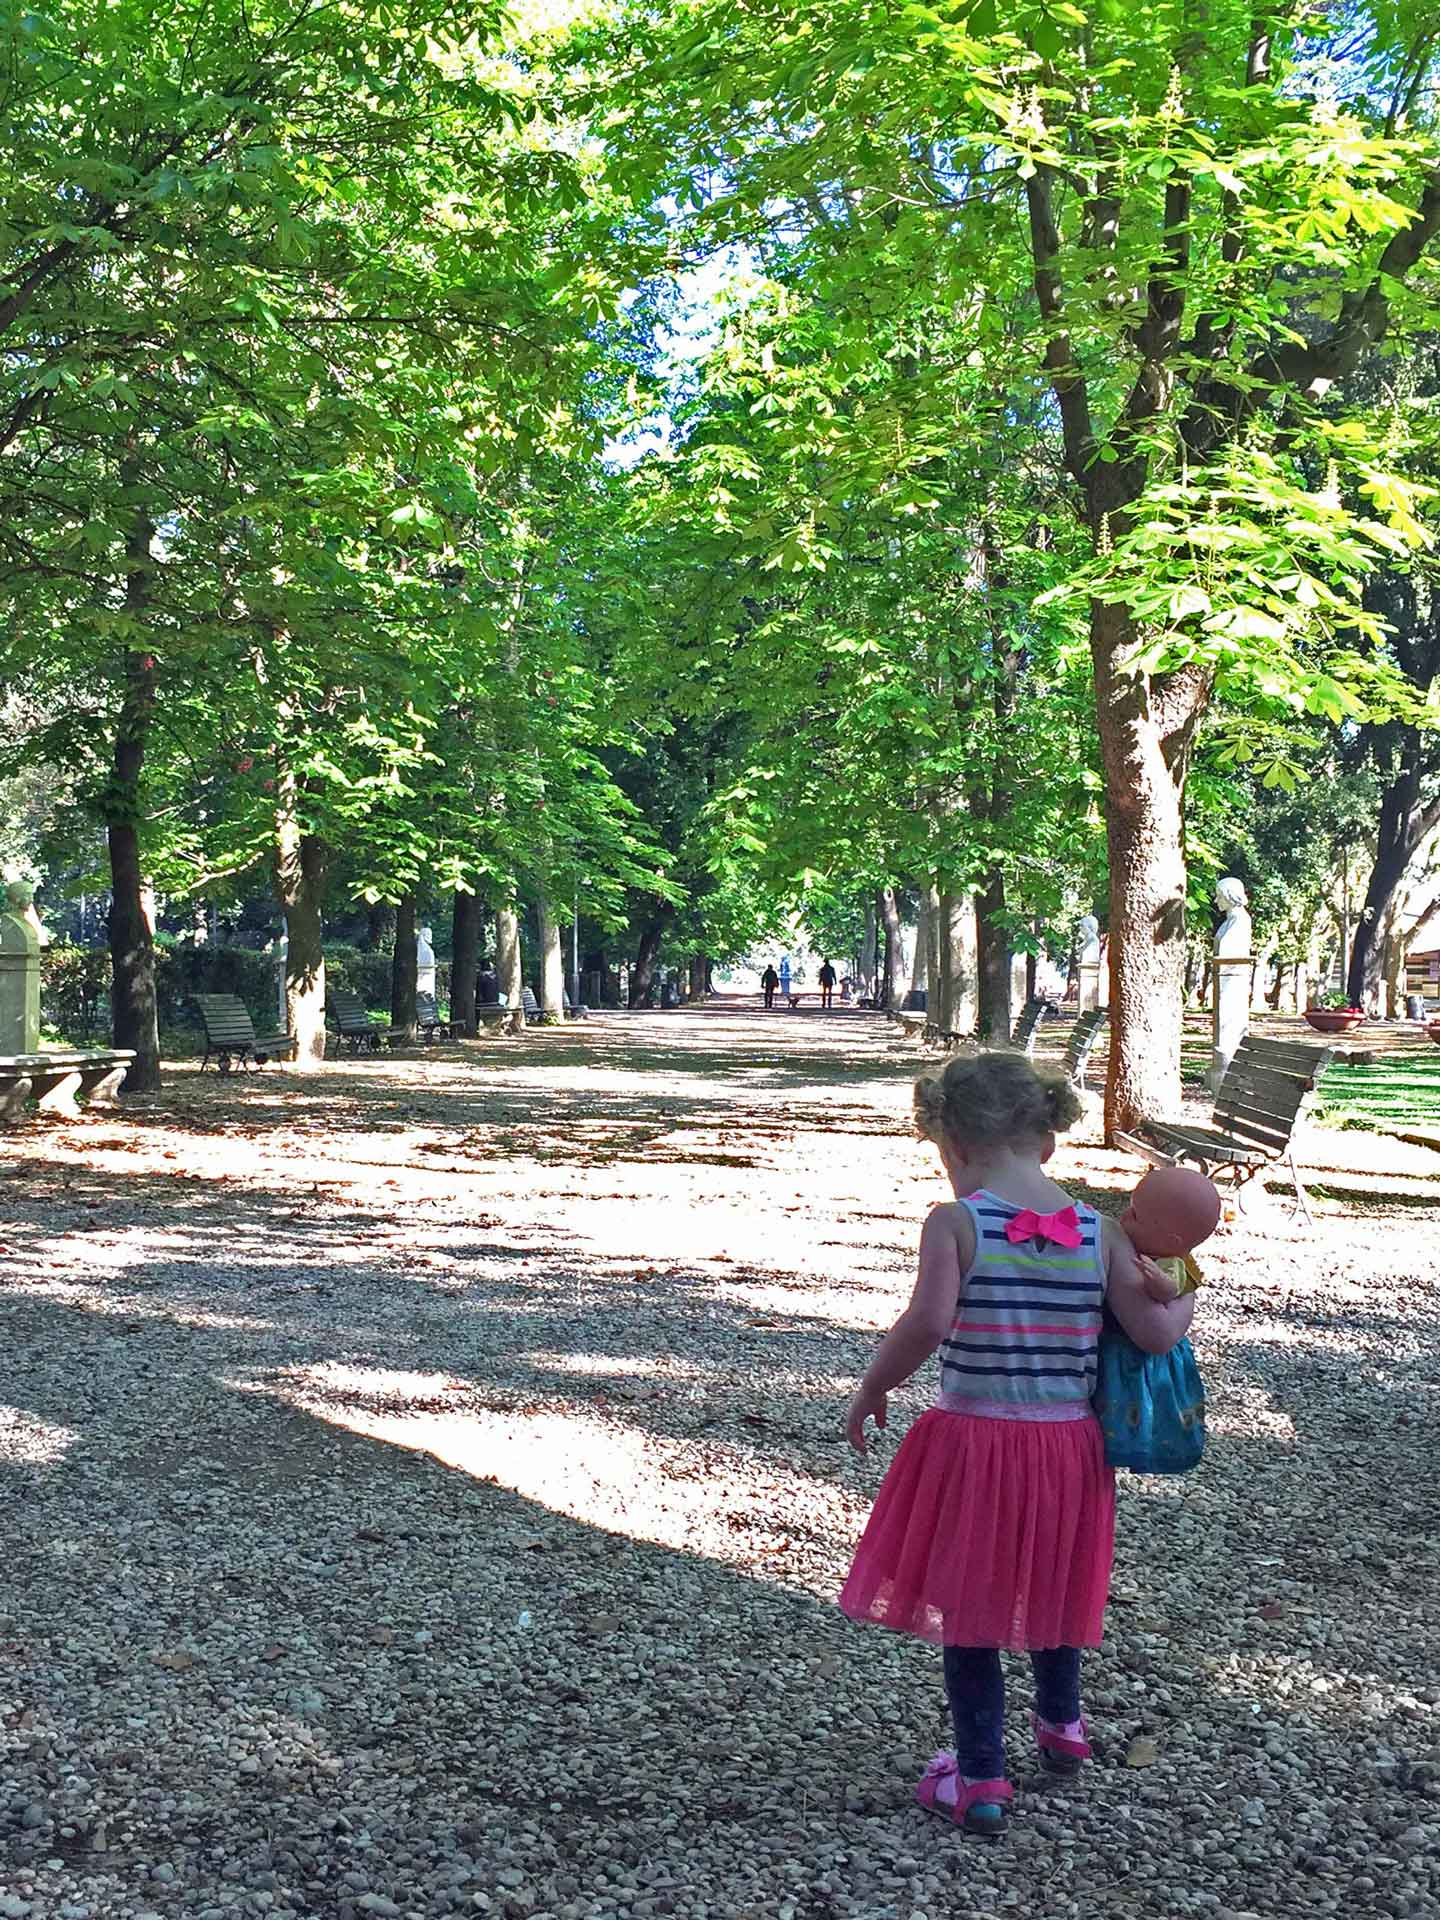 Villa Borghese Rome Italy with toddler